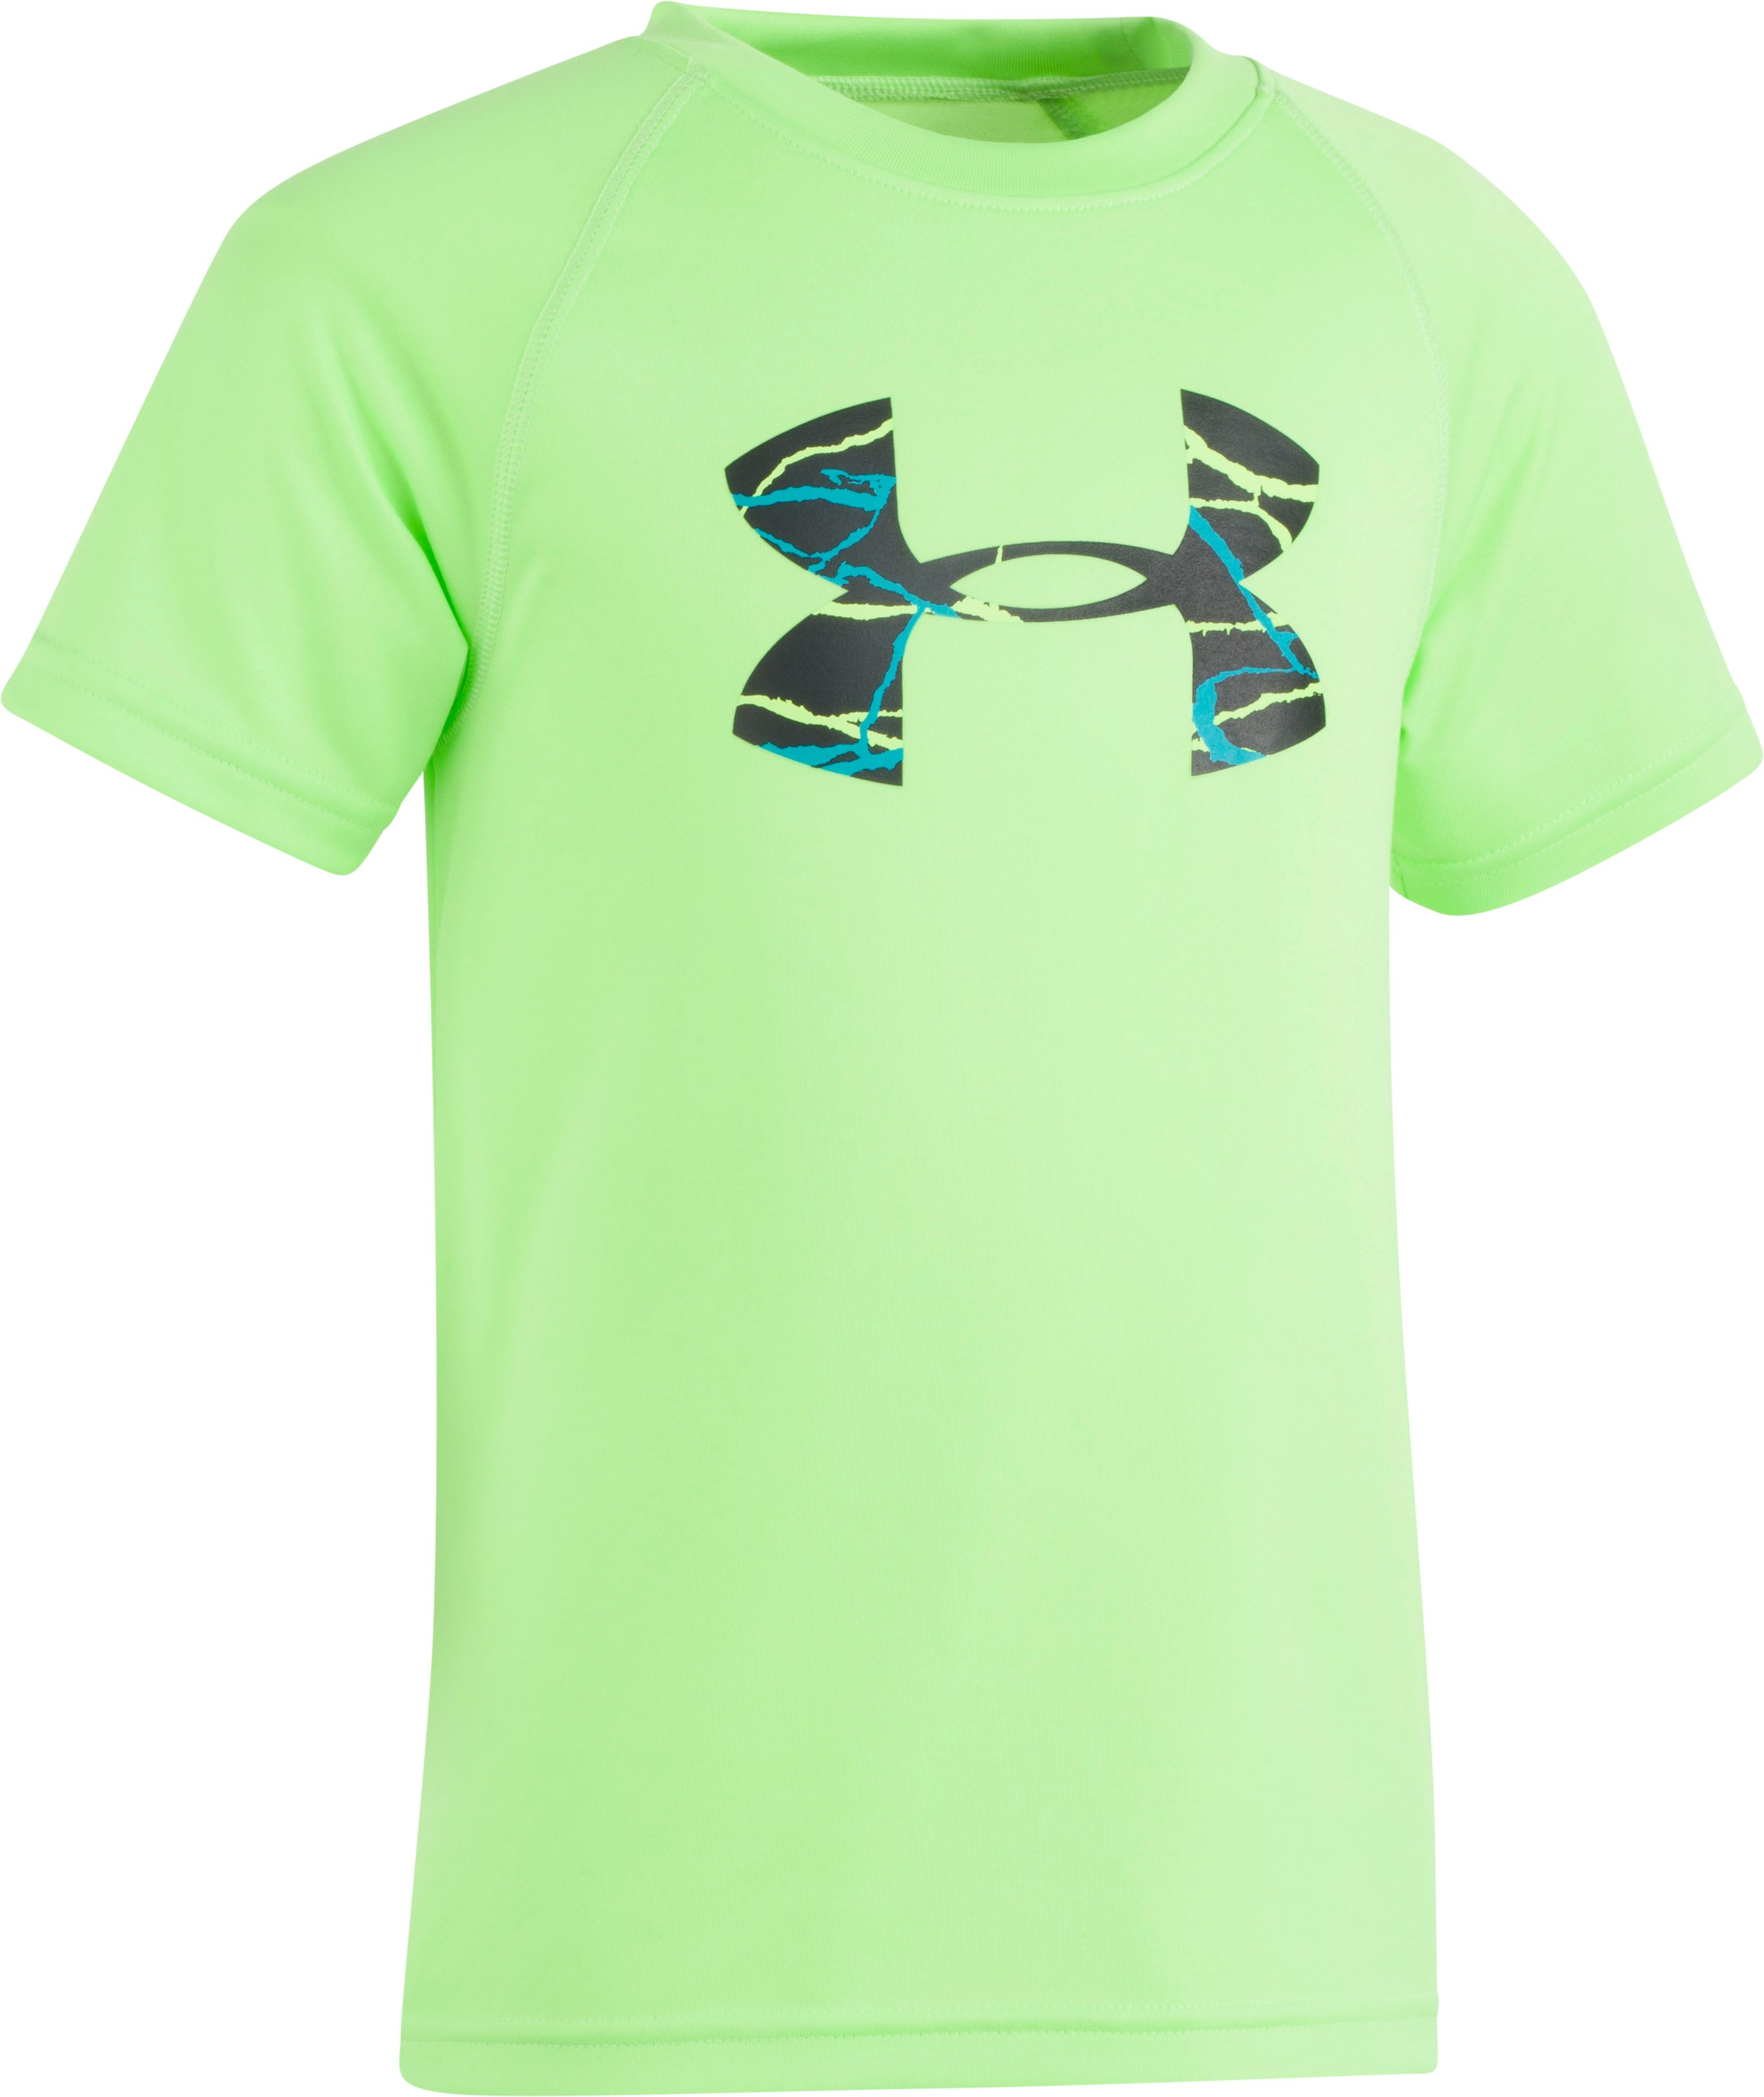 Boys' Pre-School UA Voltage Big Logo T-Shirt, Quirky Lime, Laydown